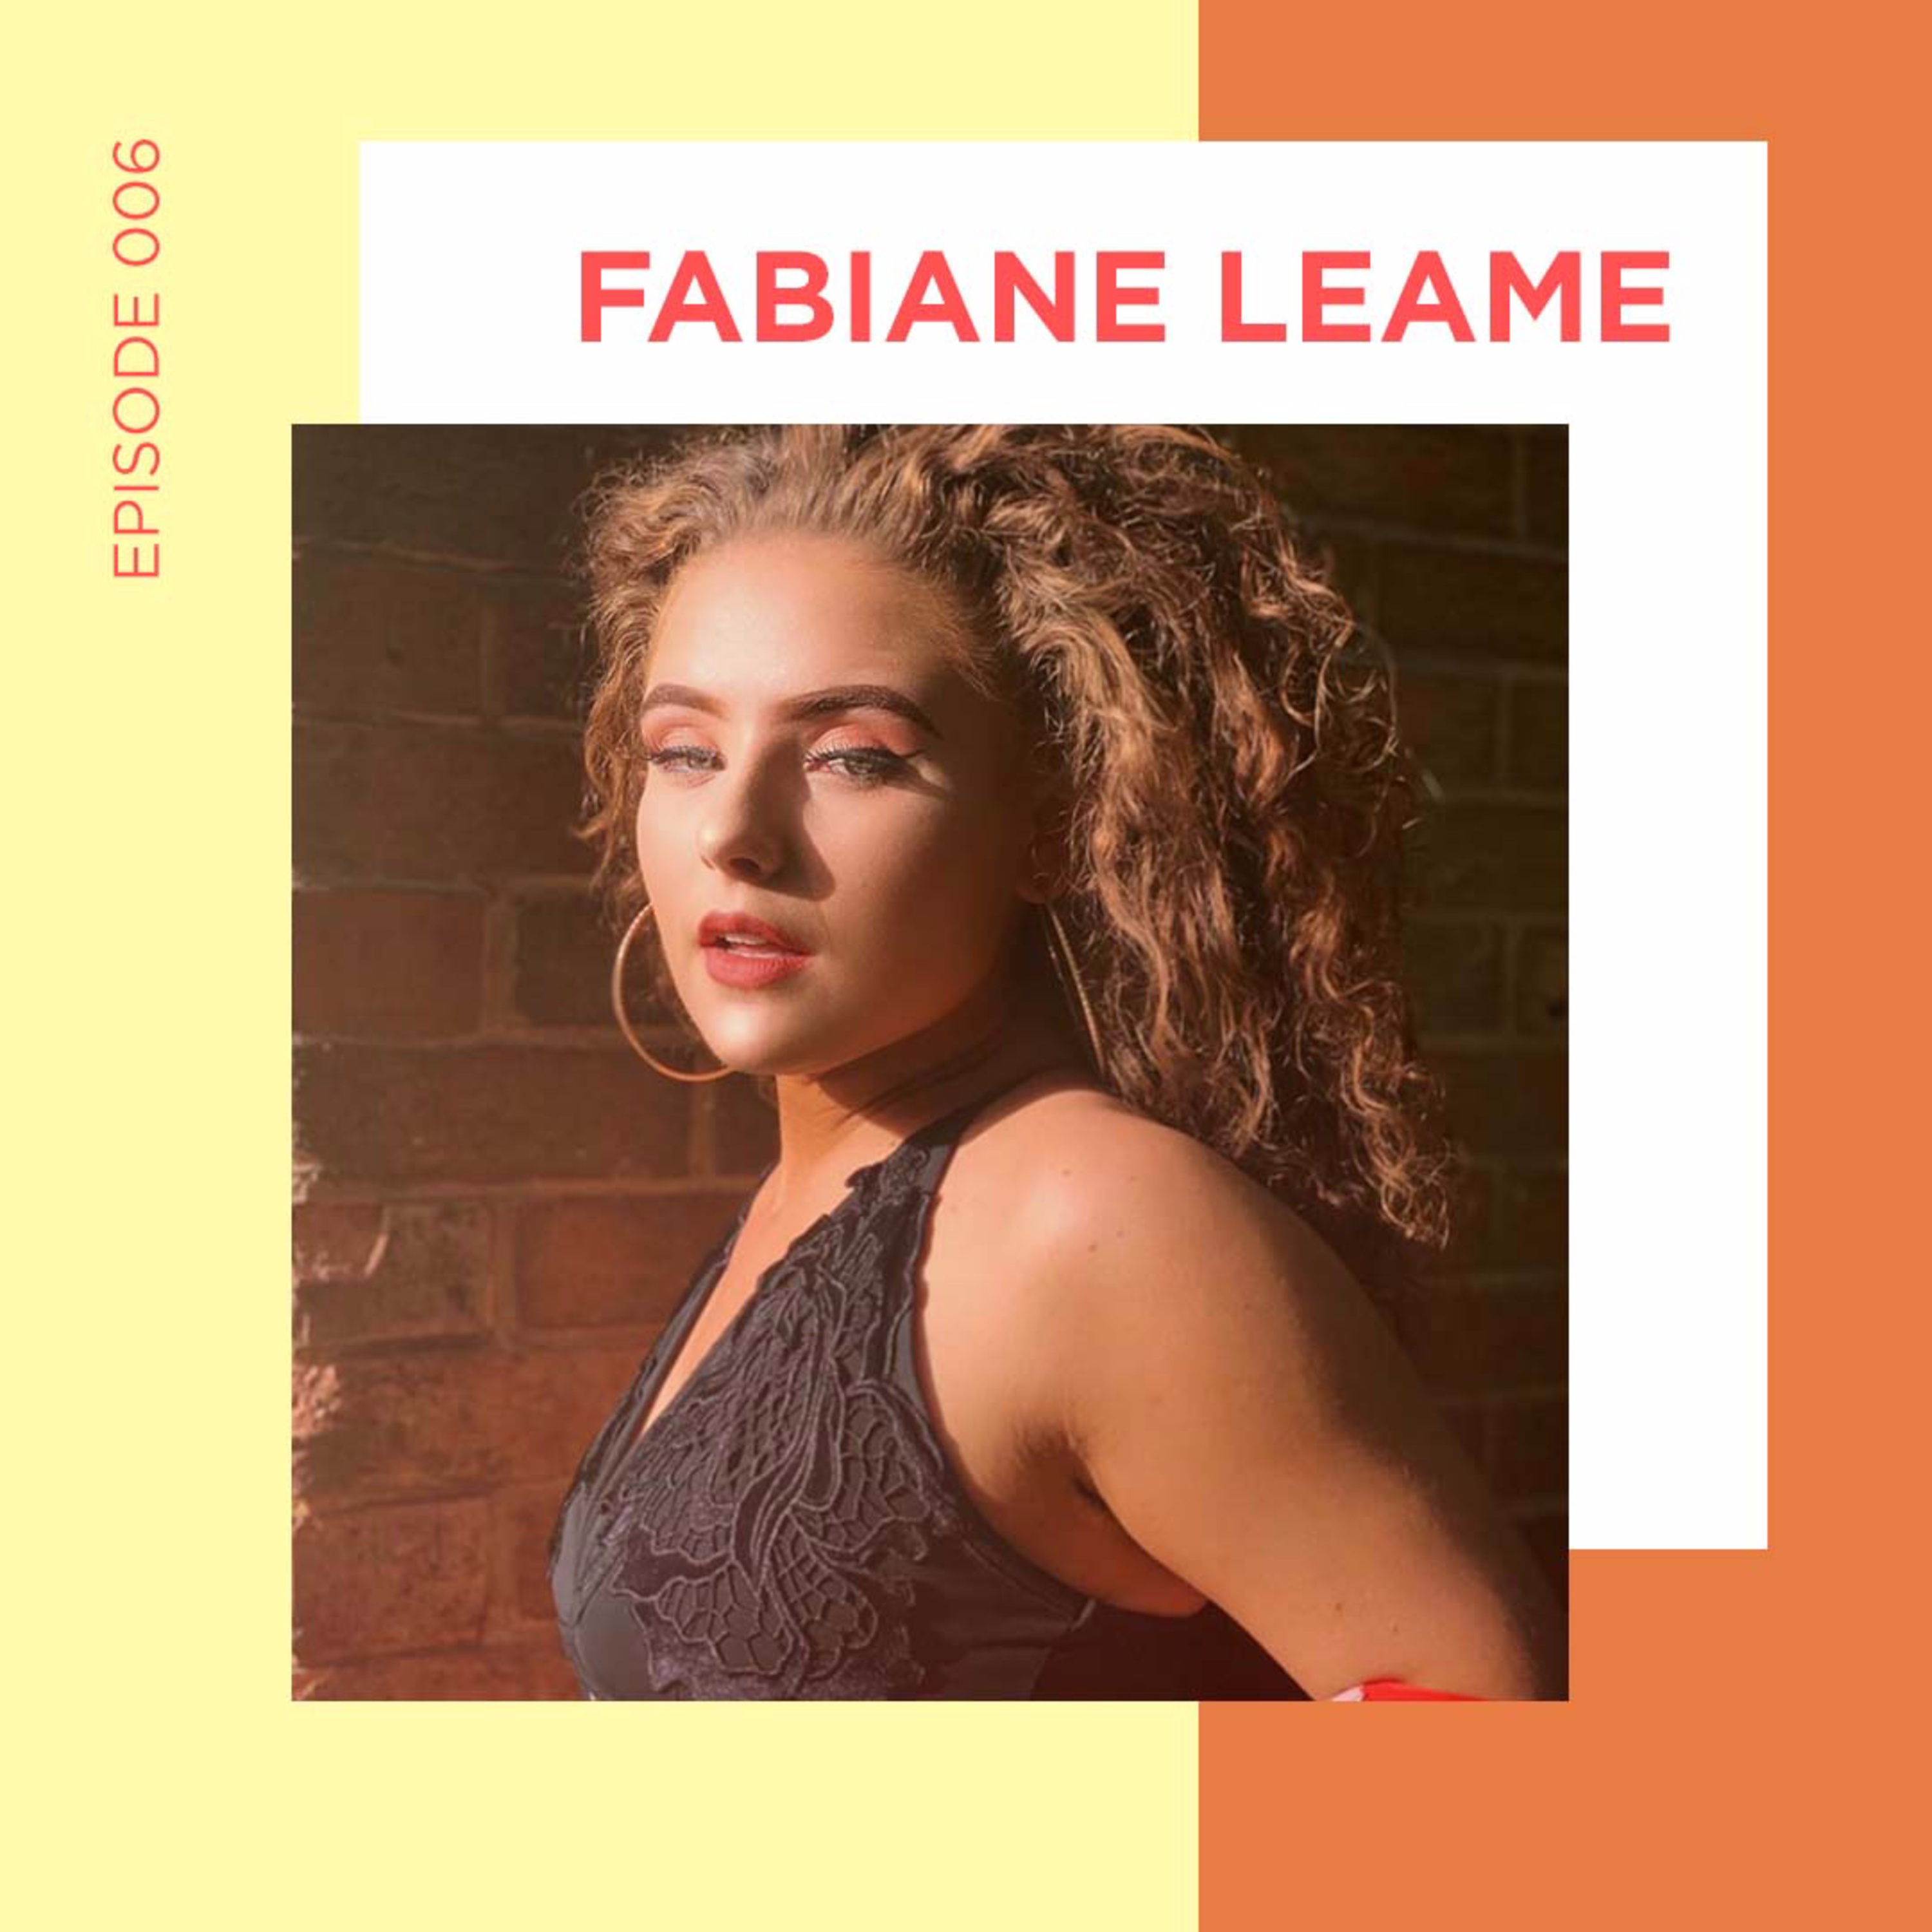 EP 6 - What's Your Favourite Sex Position with Fabiane Leame